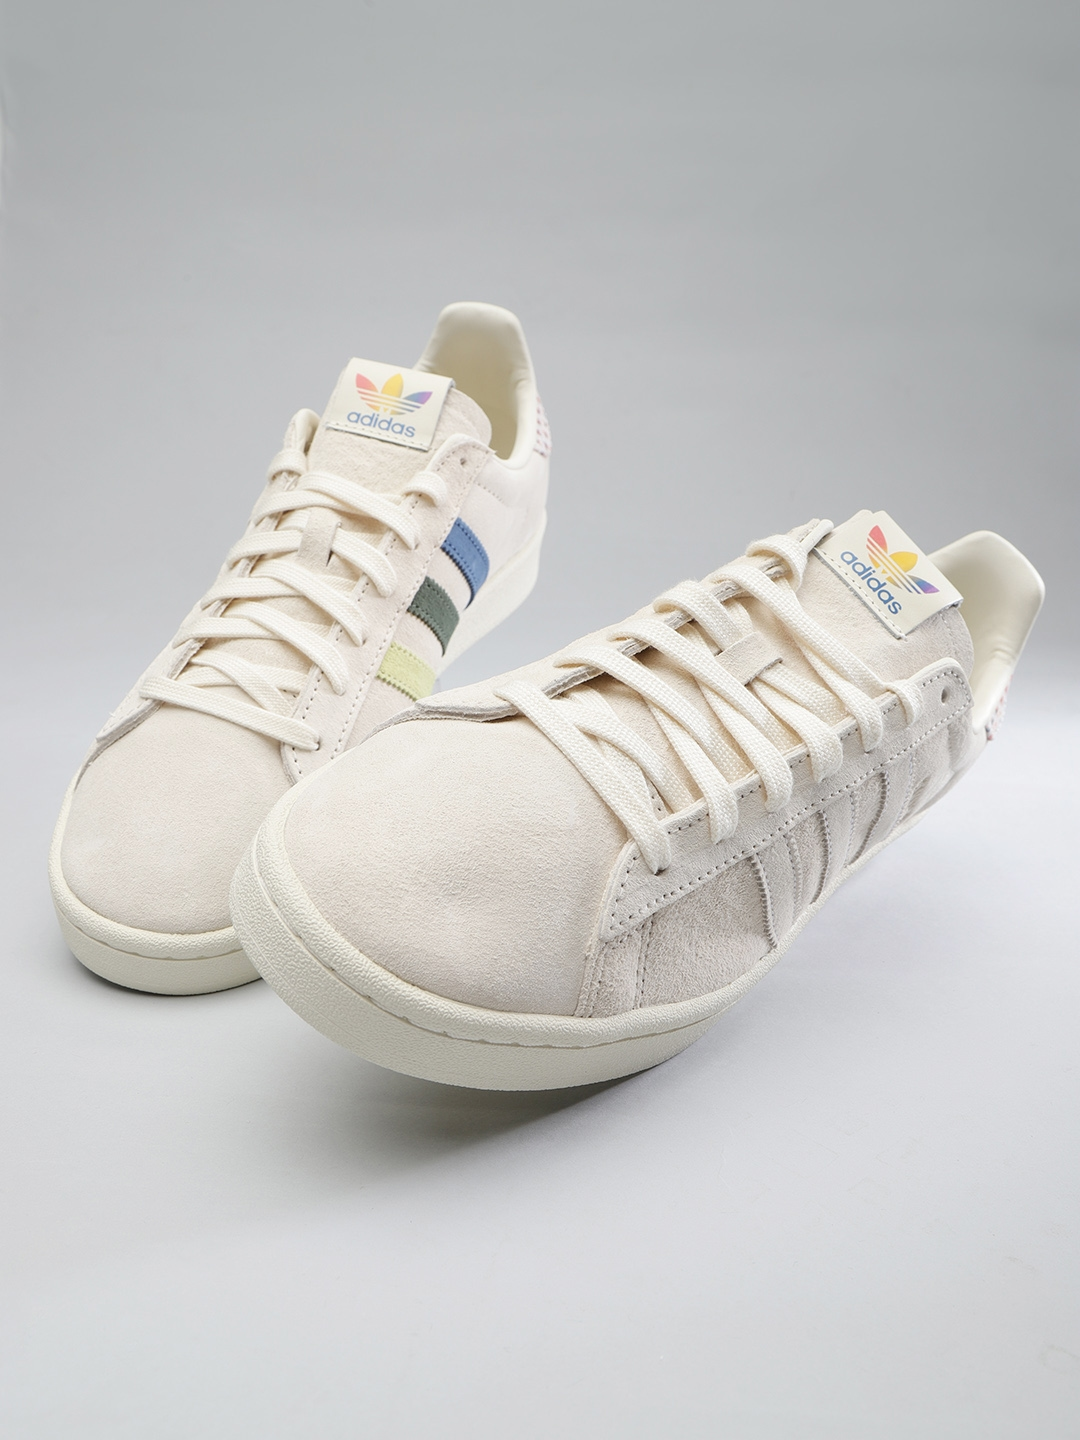 check out 66136 31d16 ADIDAS Originals Men Cream-Coloured Campus Pride Sneakers